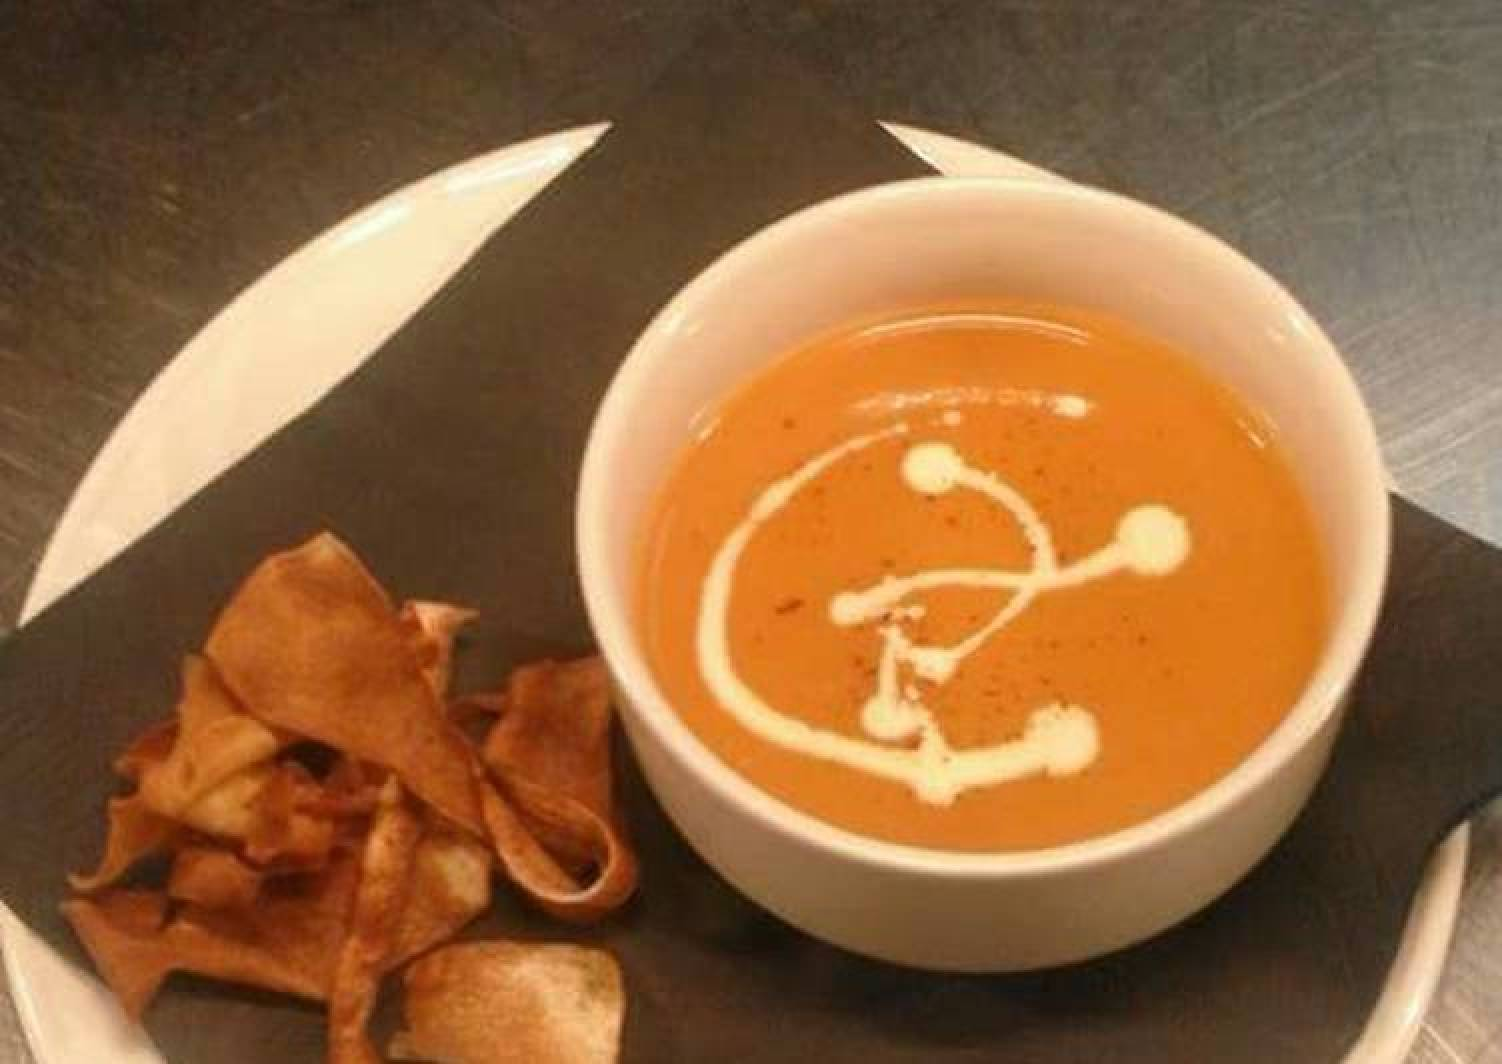 Cream of tomato soup with parsnip crisps